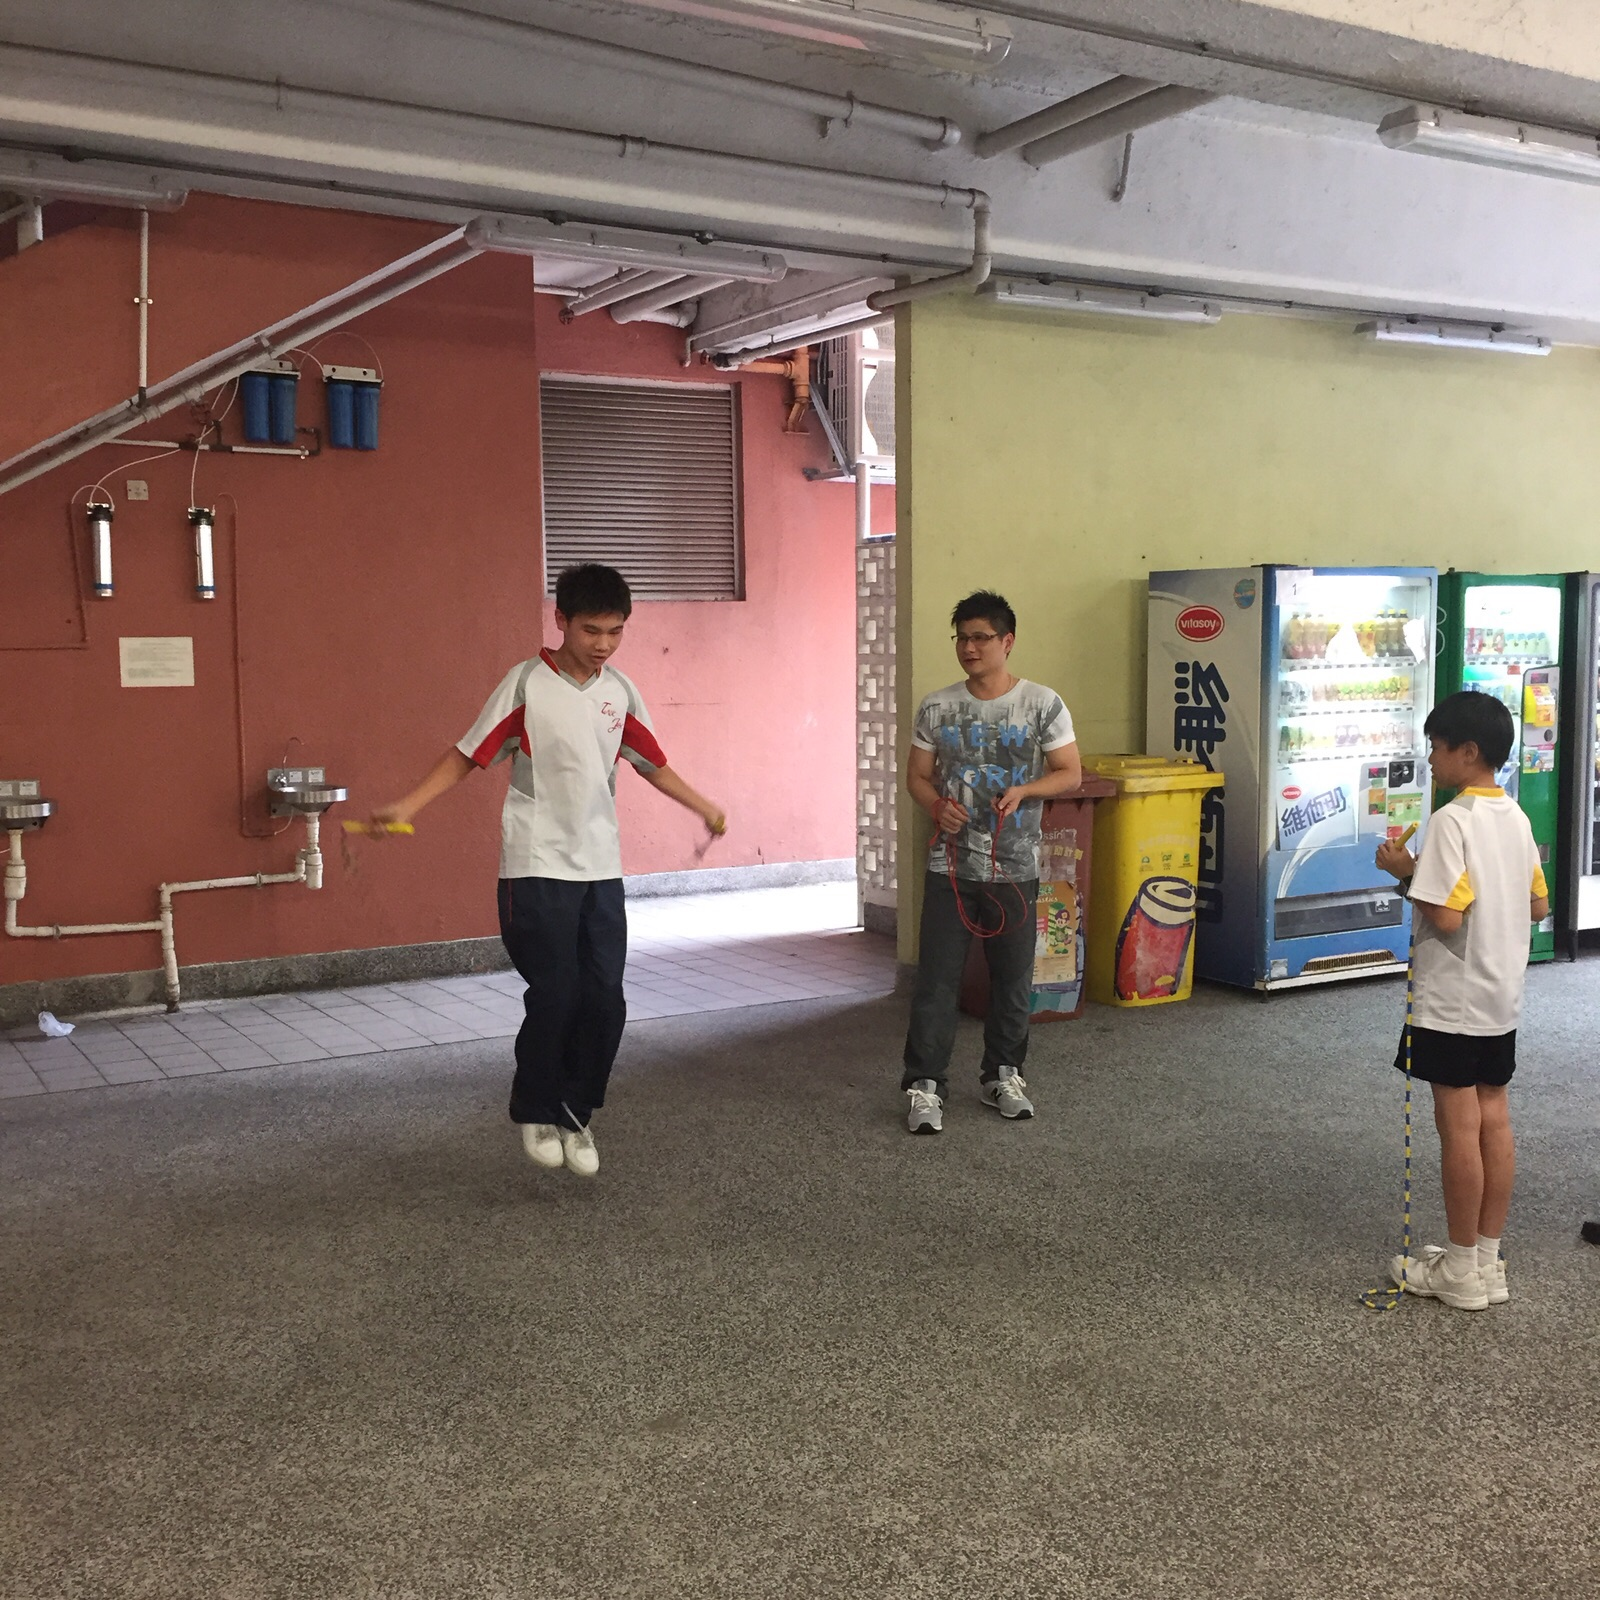 The student is doing a demonstration in the Rope Skipping Class.